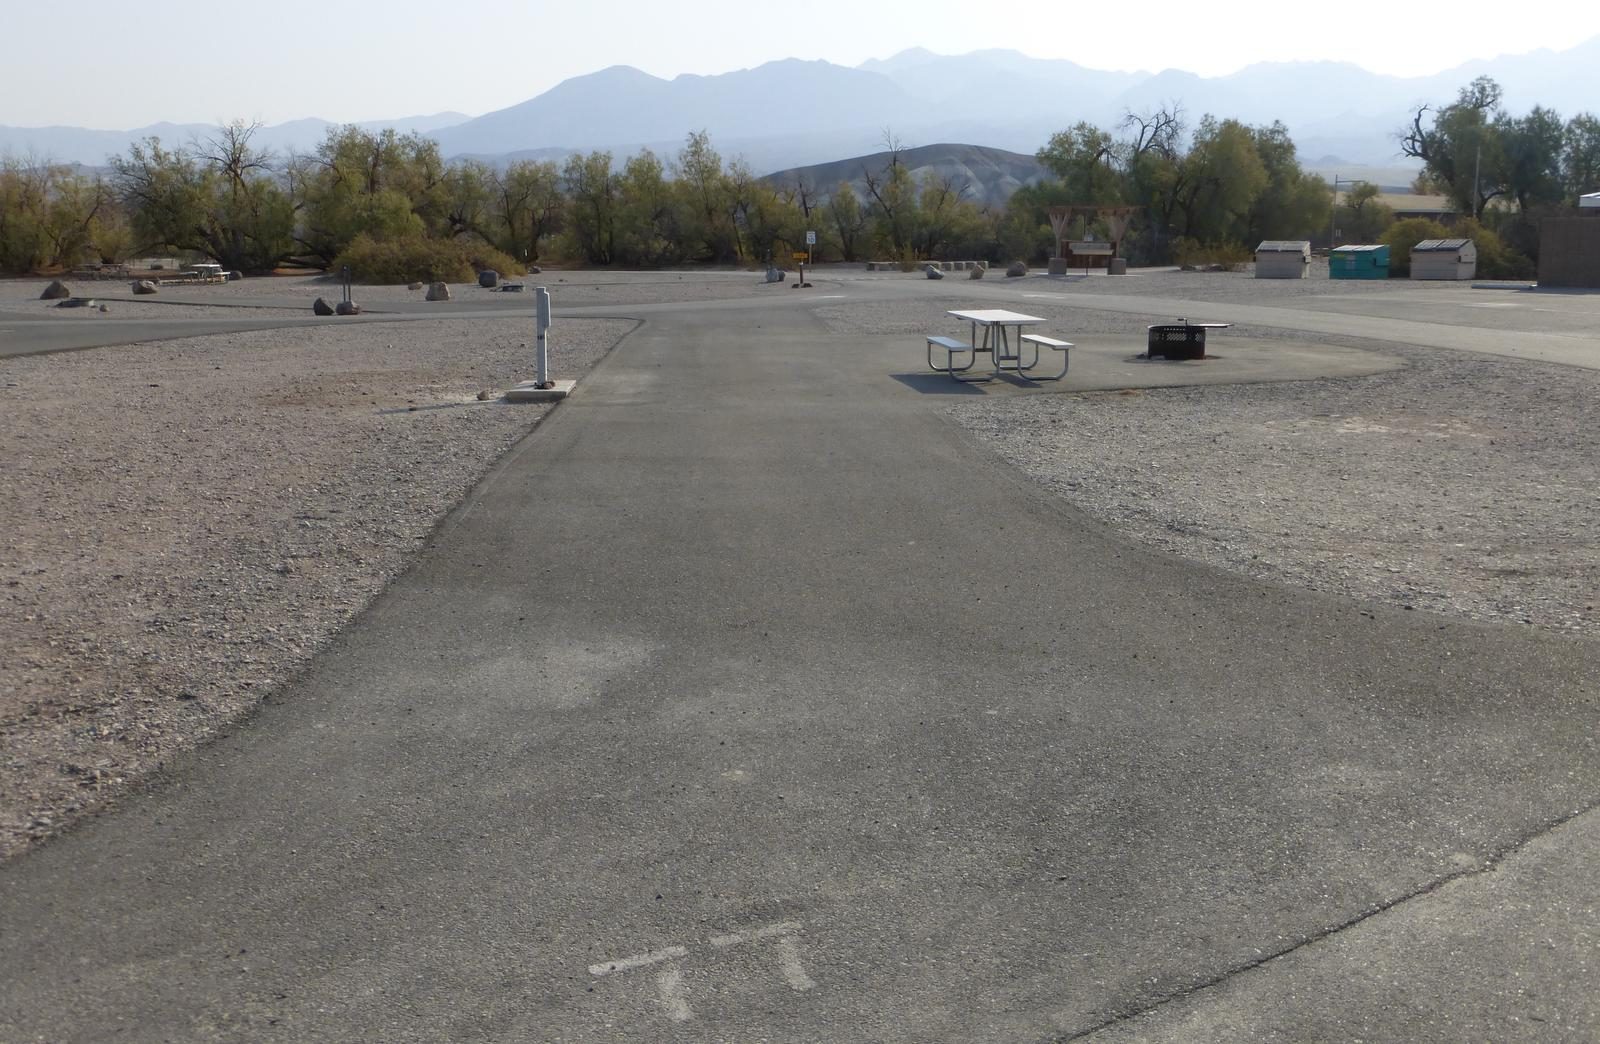 Furnace Creek Campground ADA full hookup site #77. Water, sewer, and 30/50 amp electric connection. One ADA accessible fire pit and picnic table.